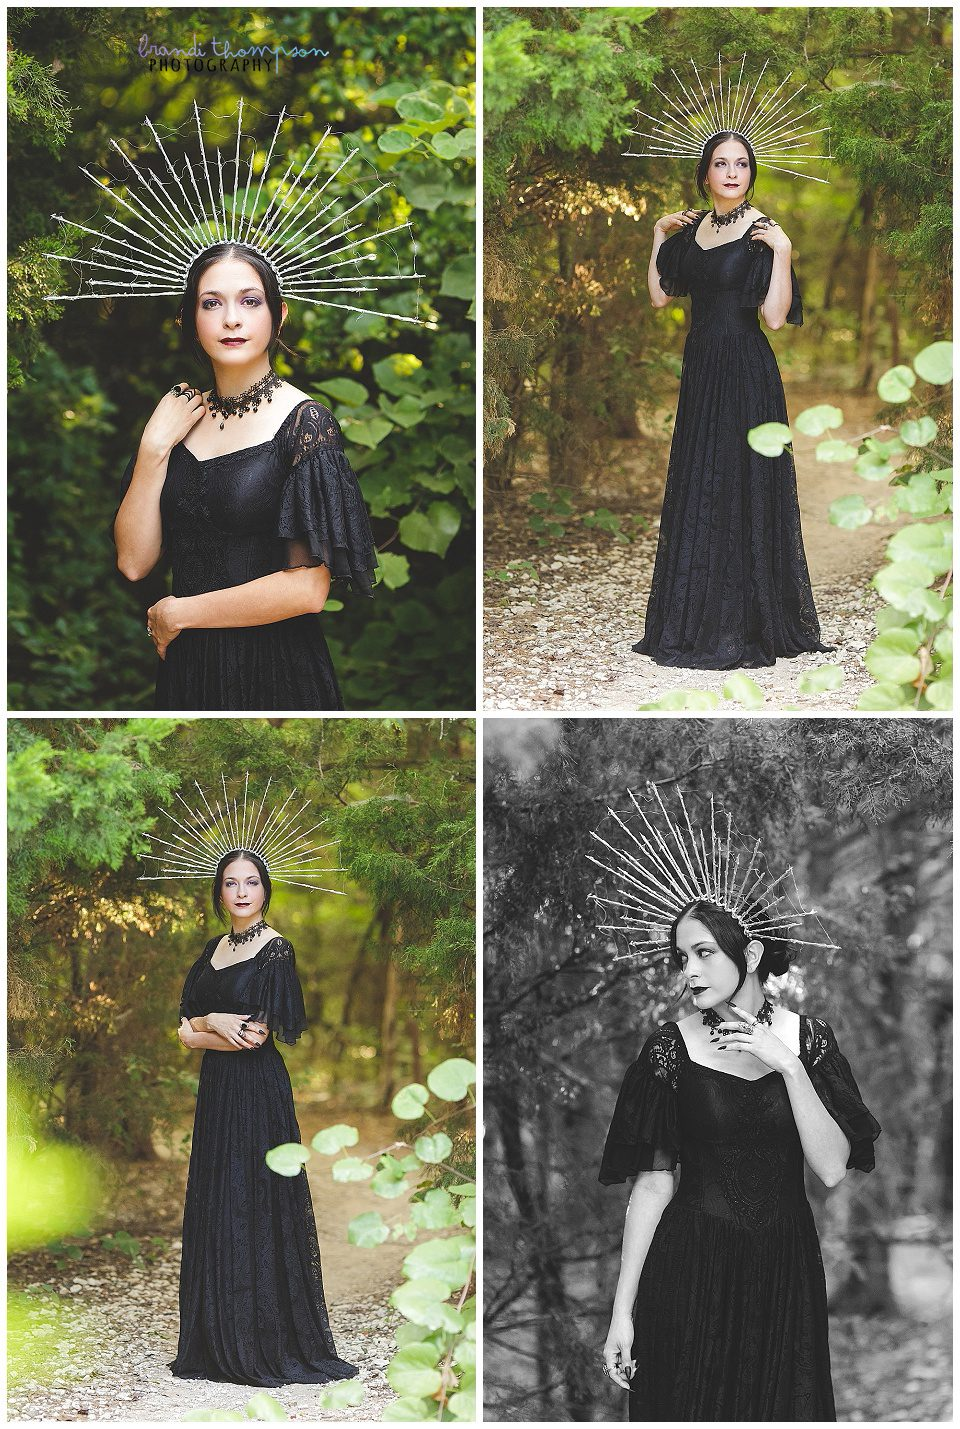 outdoor photos of 30th birthday session with a goth theme, a long, lacy black dress and silver starburst style crown